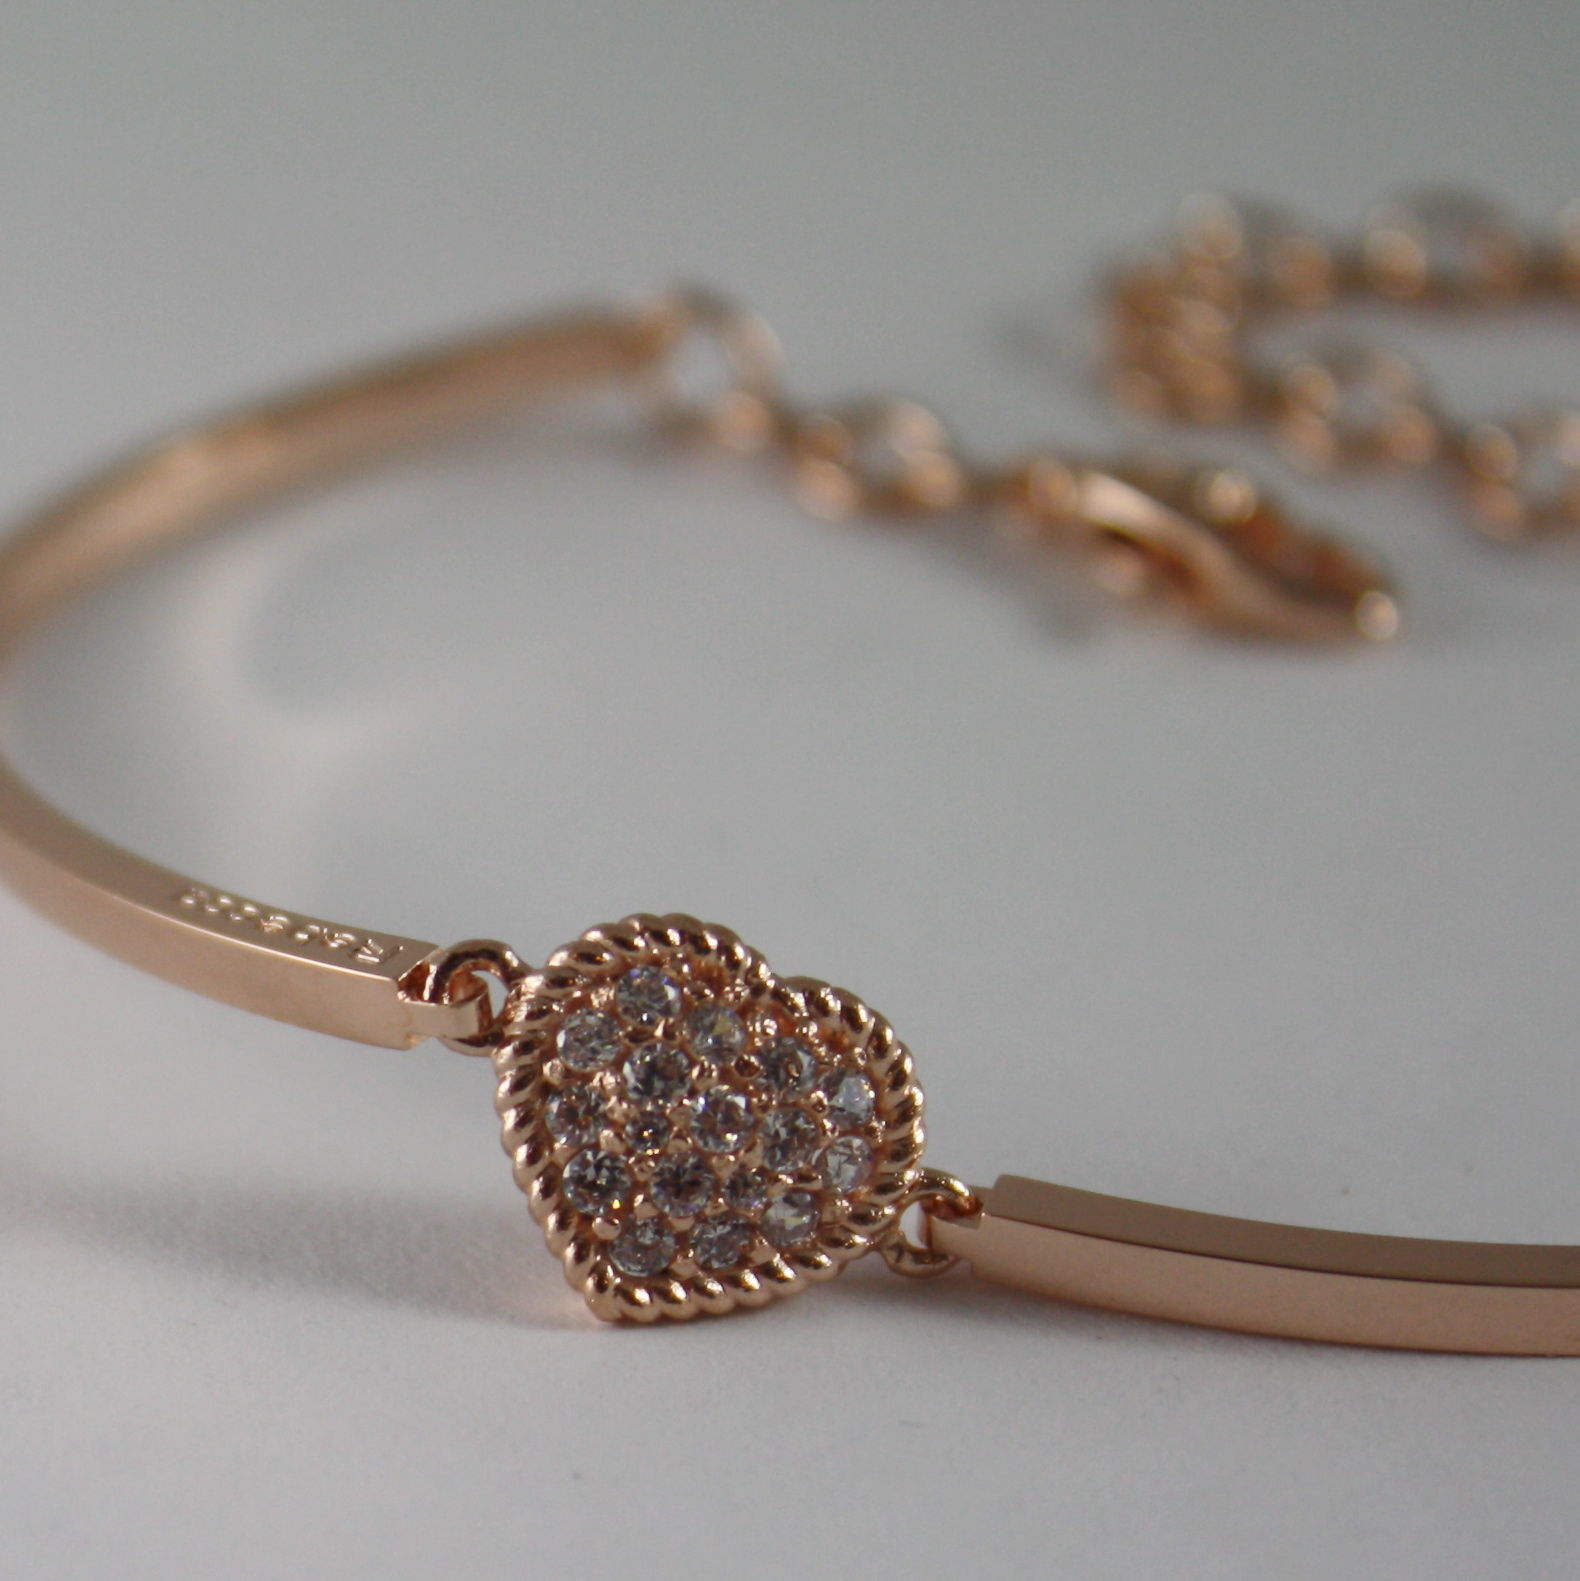 ROSE BRONZE BRACELET SEMI RIGID TENNIS HEART B14BRB04, BY REBECCA MADE IN ITALY.